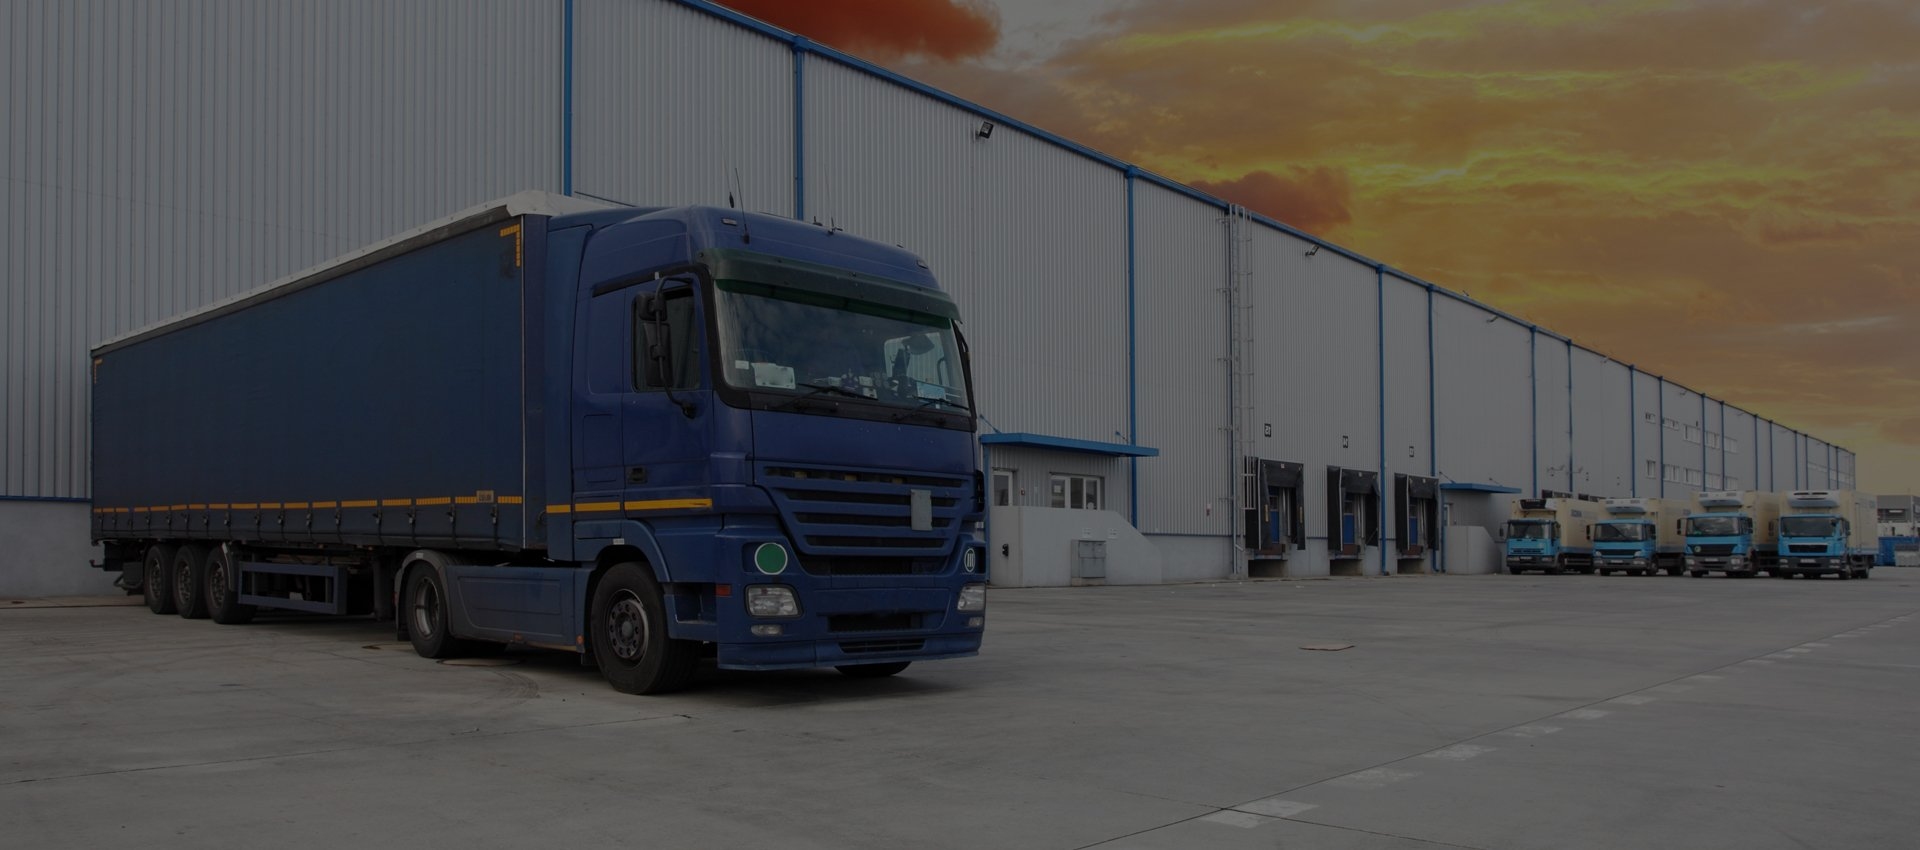 A lorry outside an industrial building